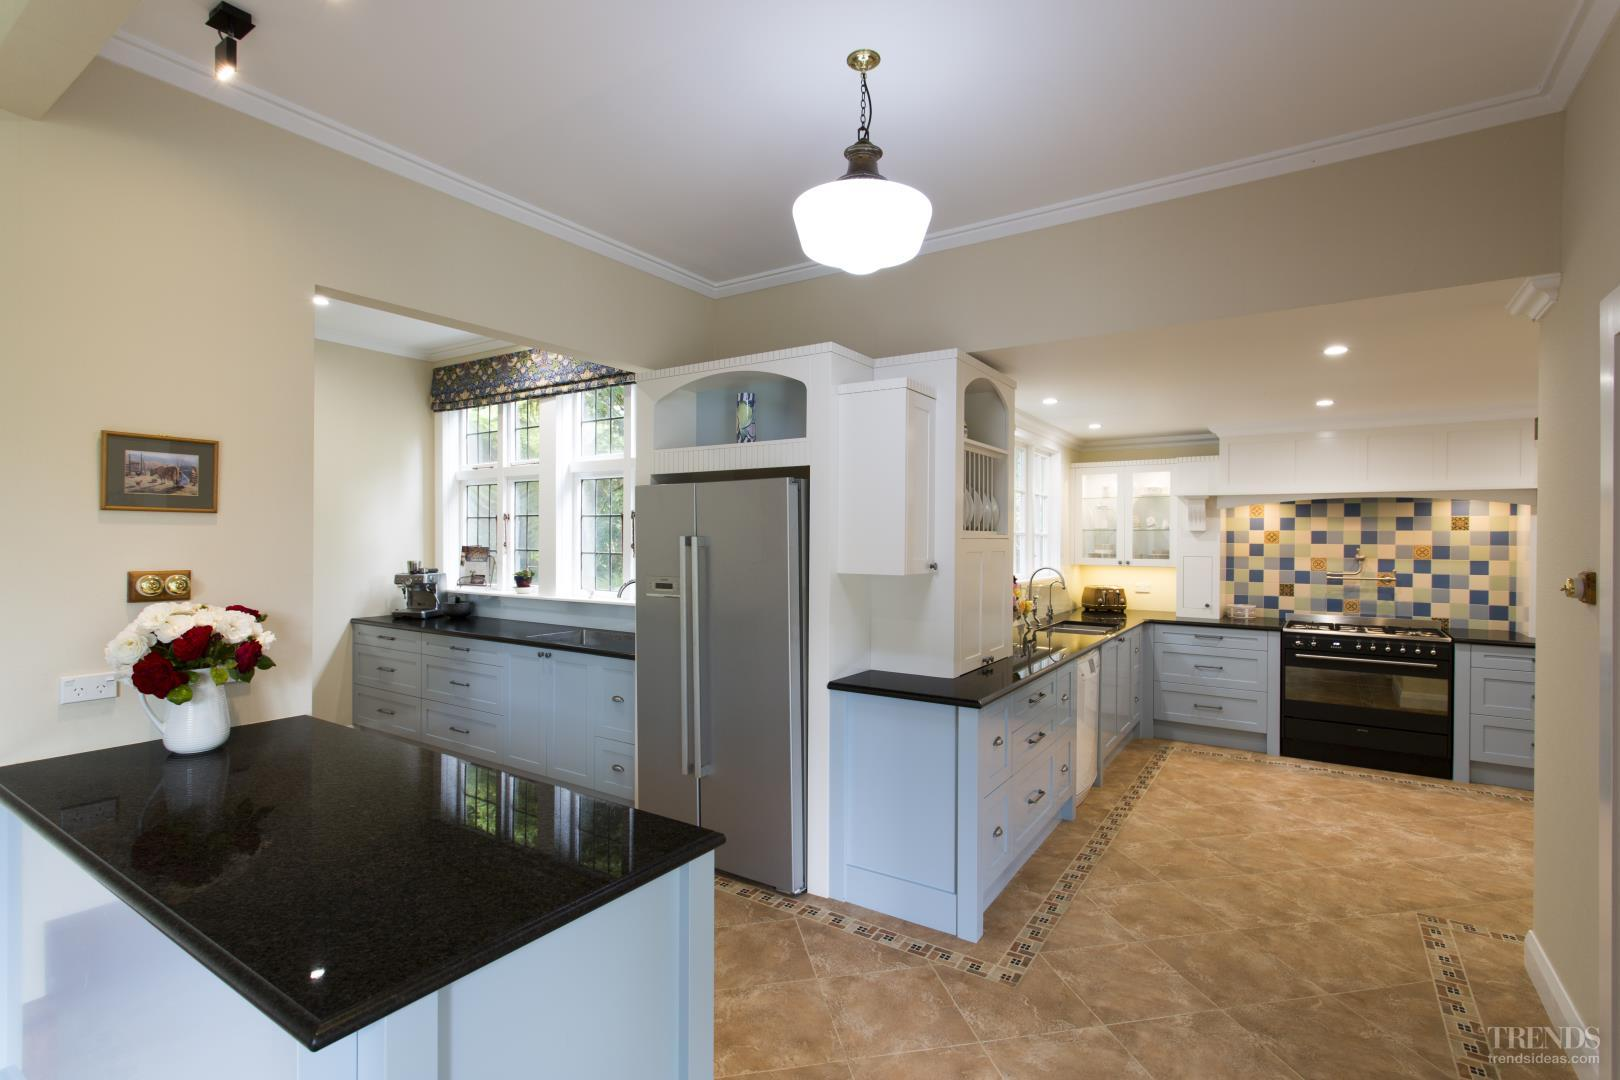 multi space kitchen by mastercraft kitchens with mosaic